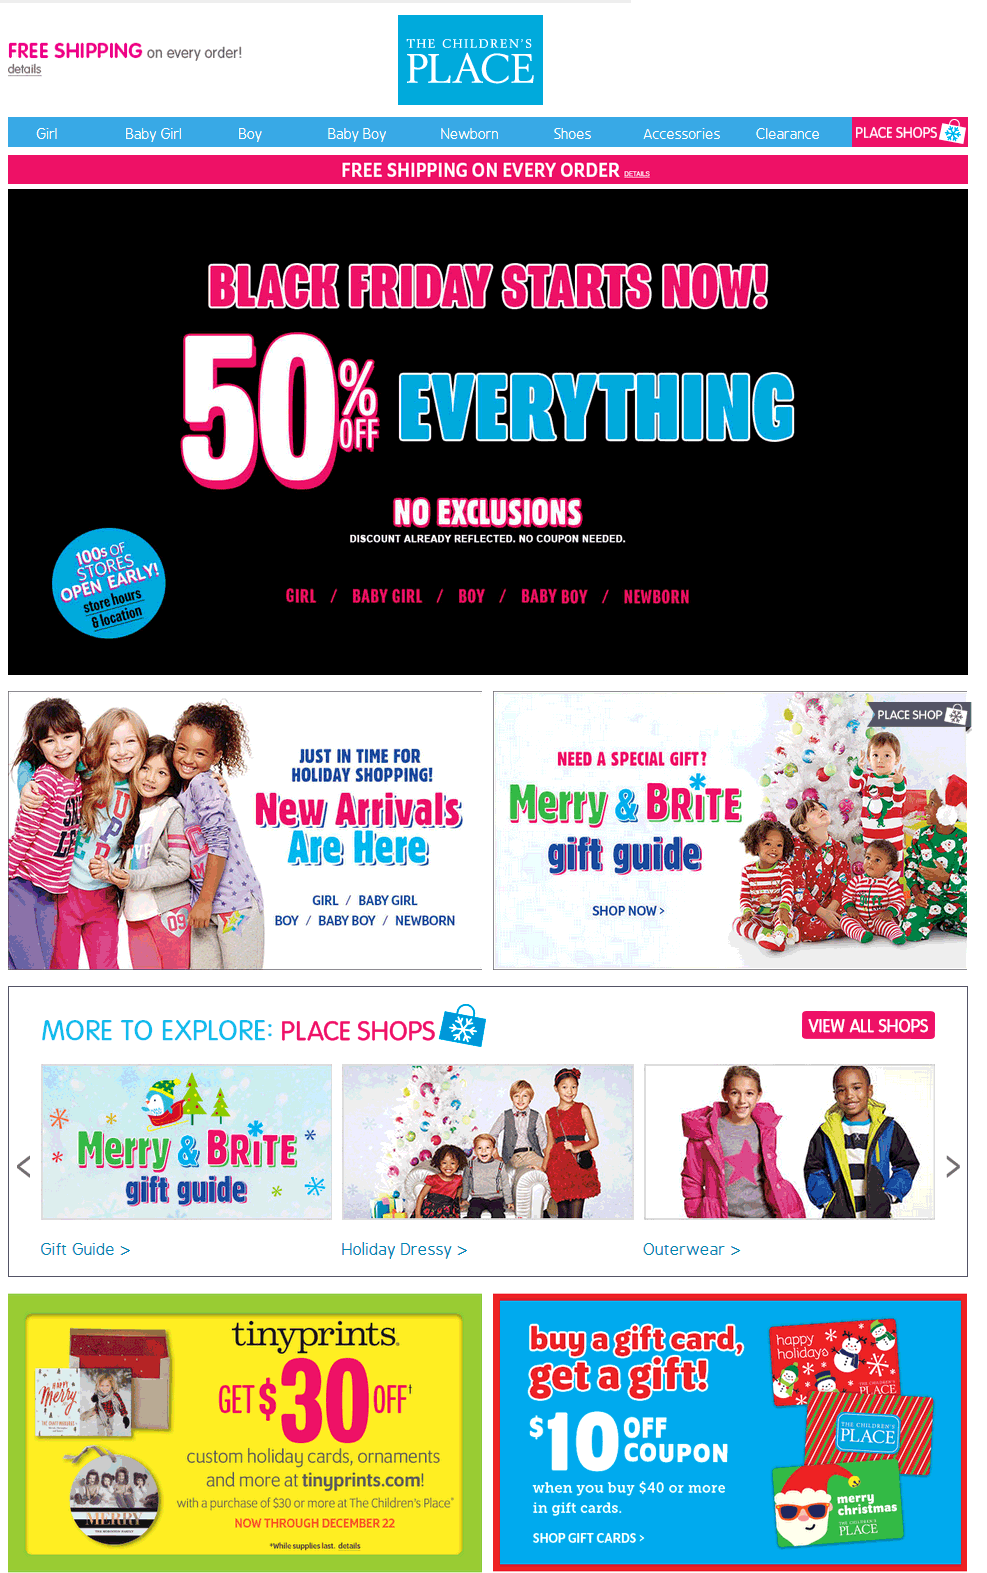 The Childrens Place Coupon July 2017 Everything is 50% off at The Childrens Place, ditto online